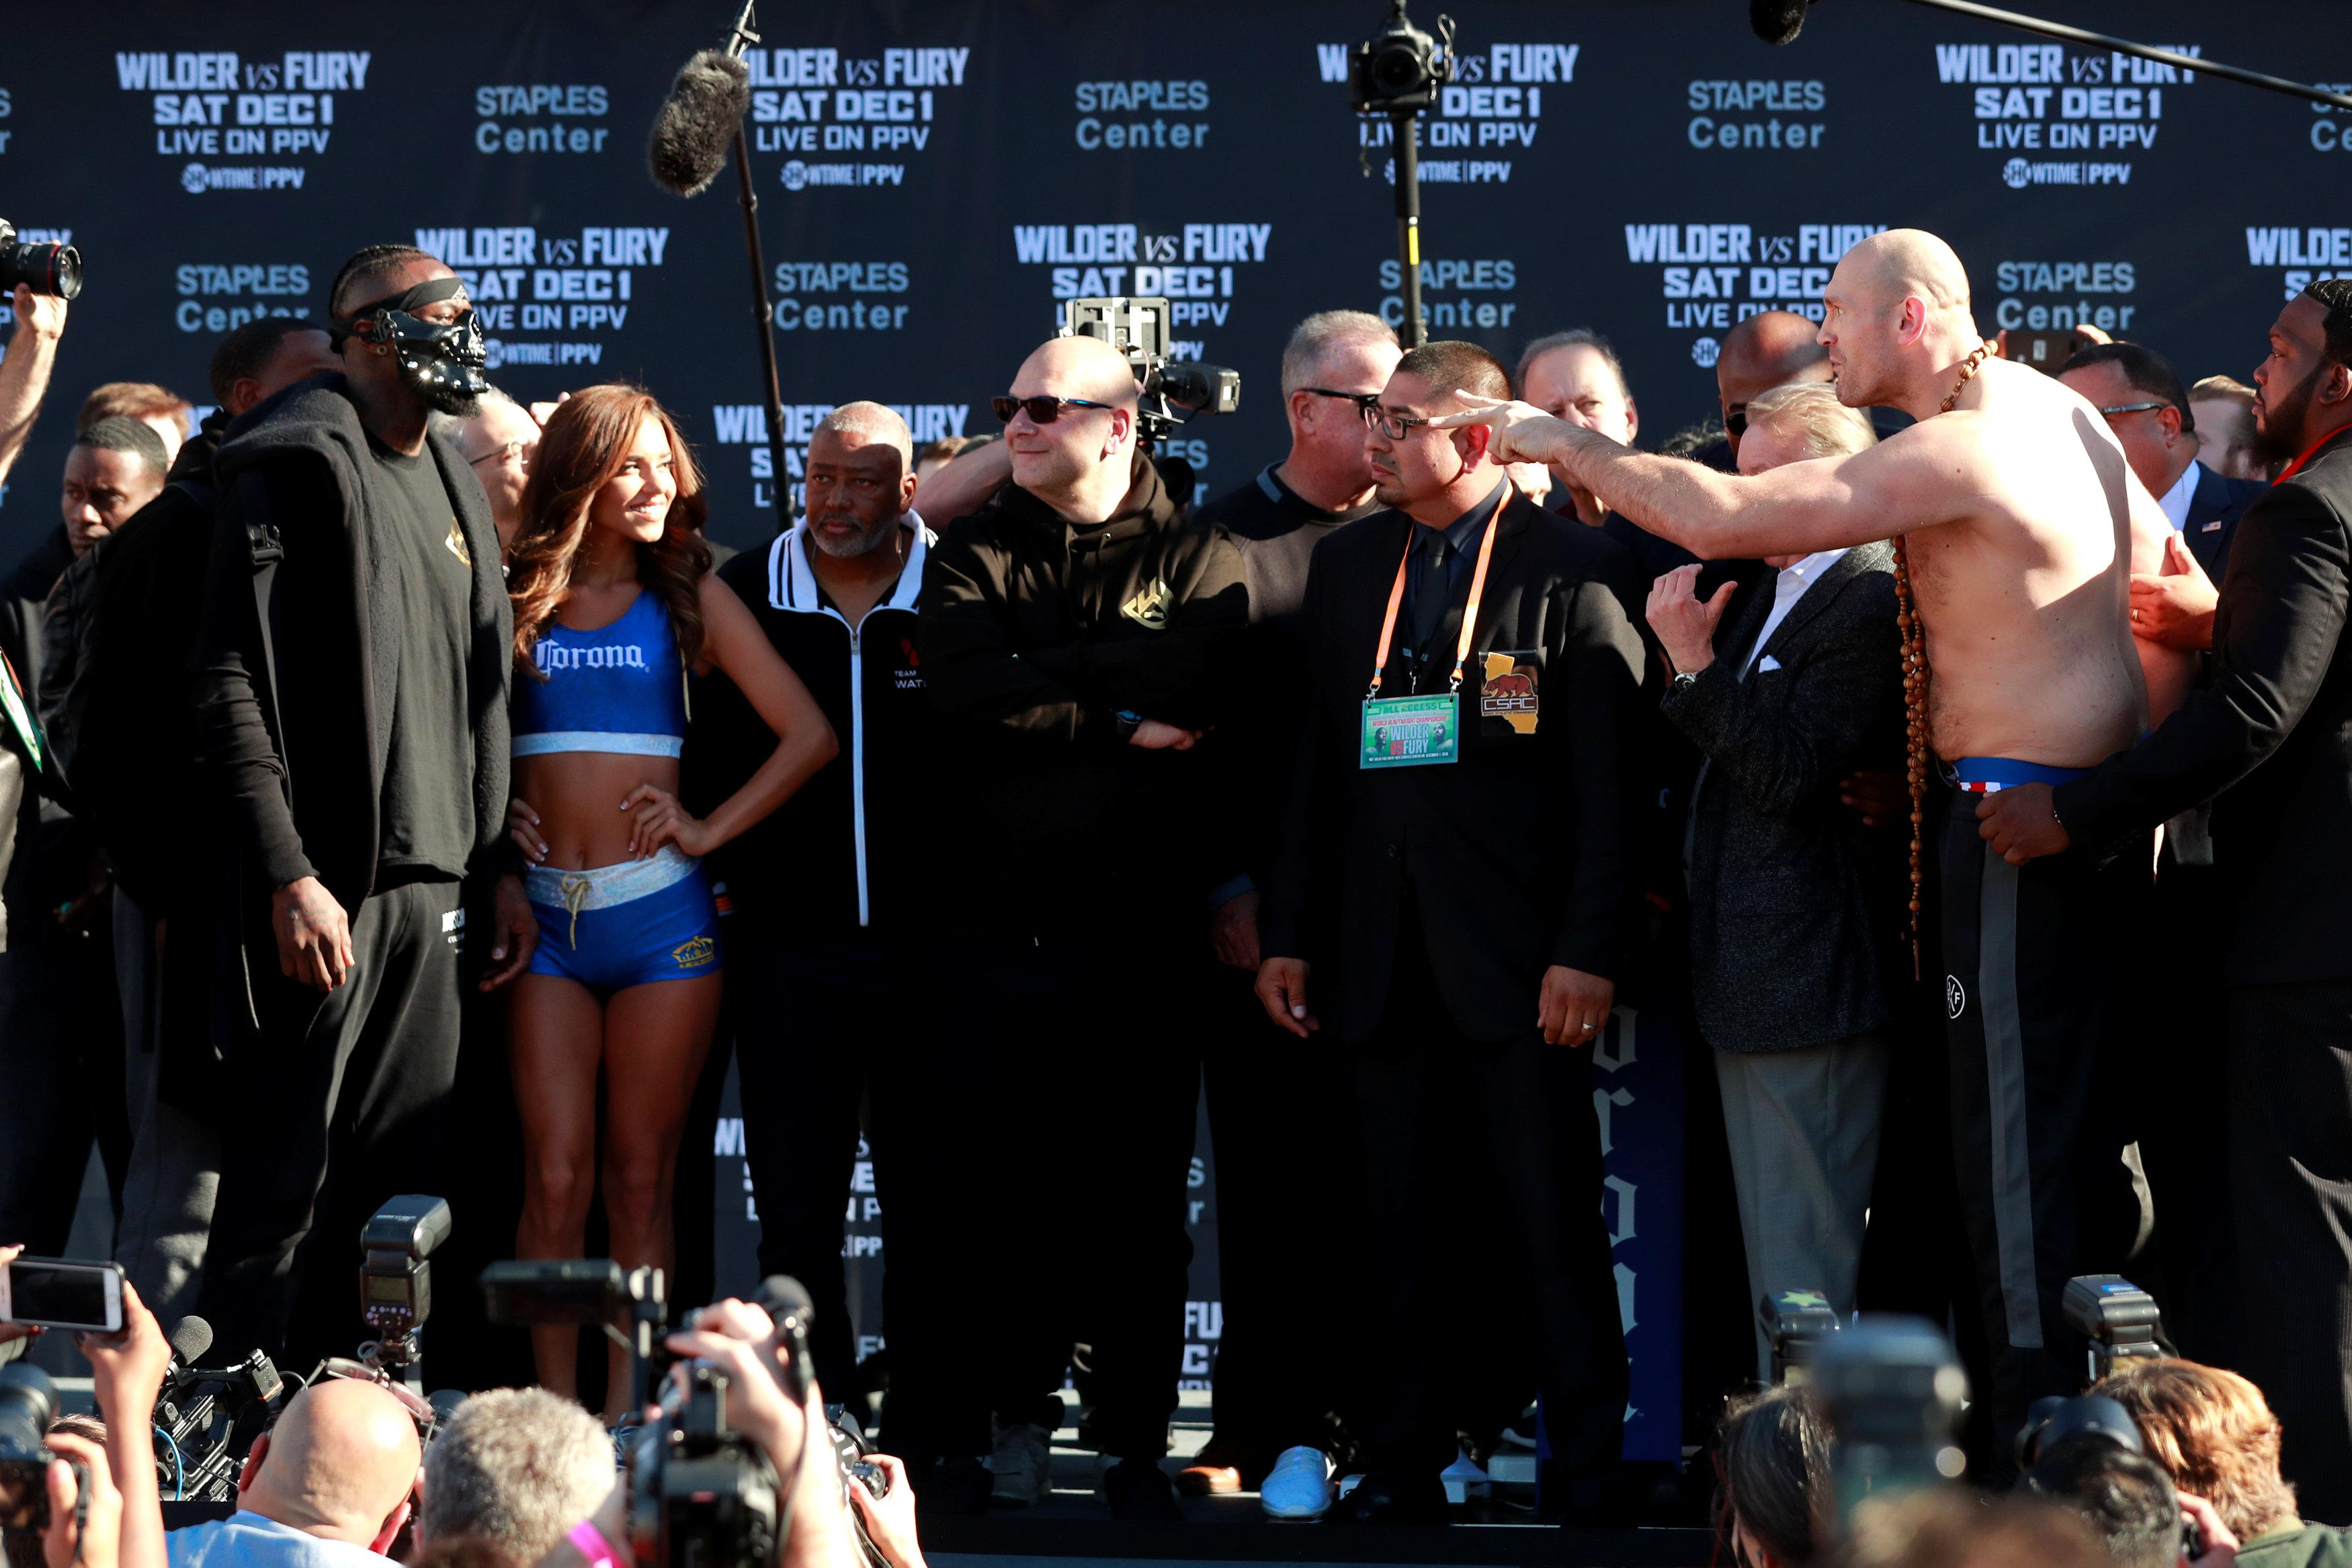 The pair did not go head-to-head during heated weigh-in